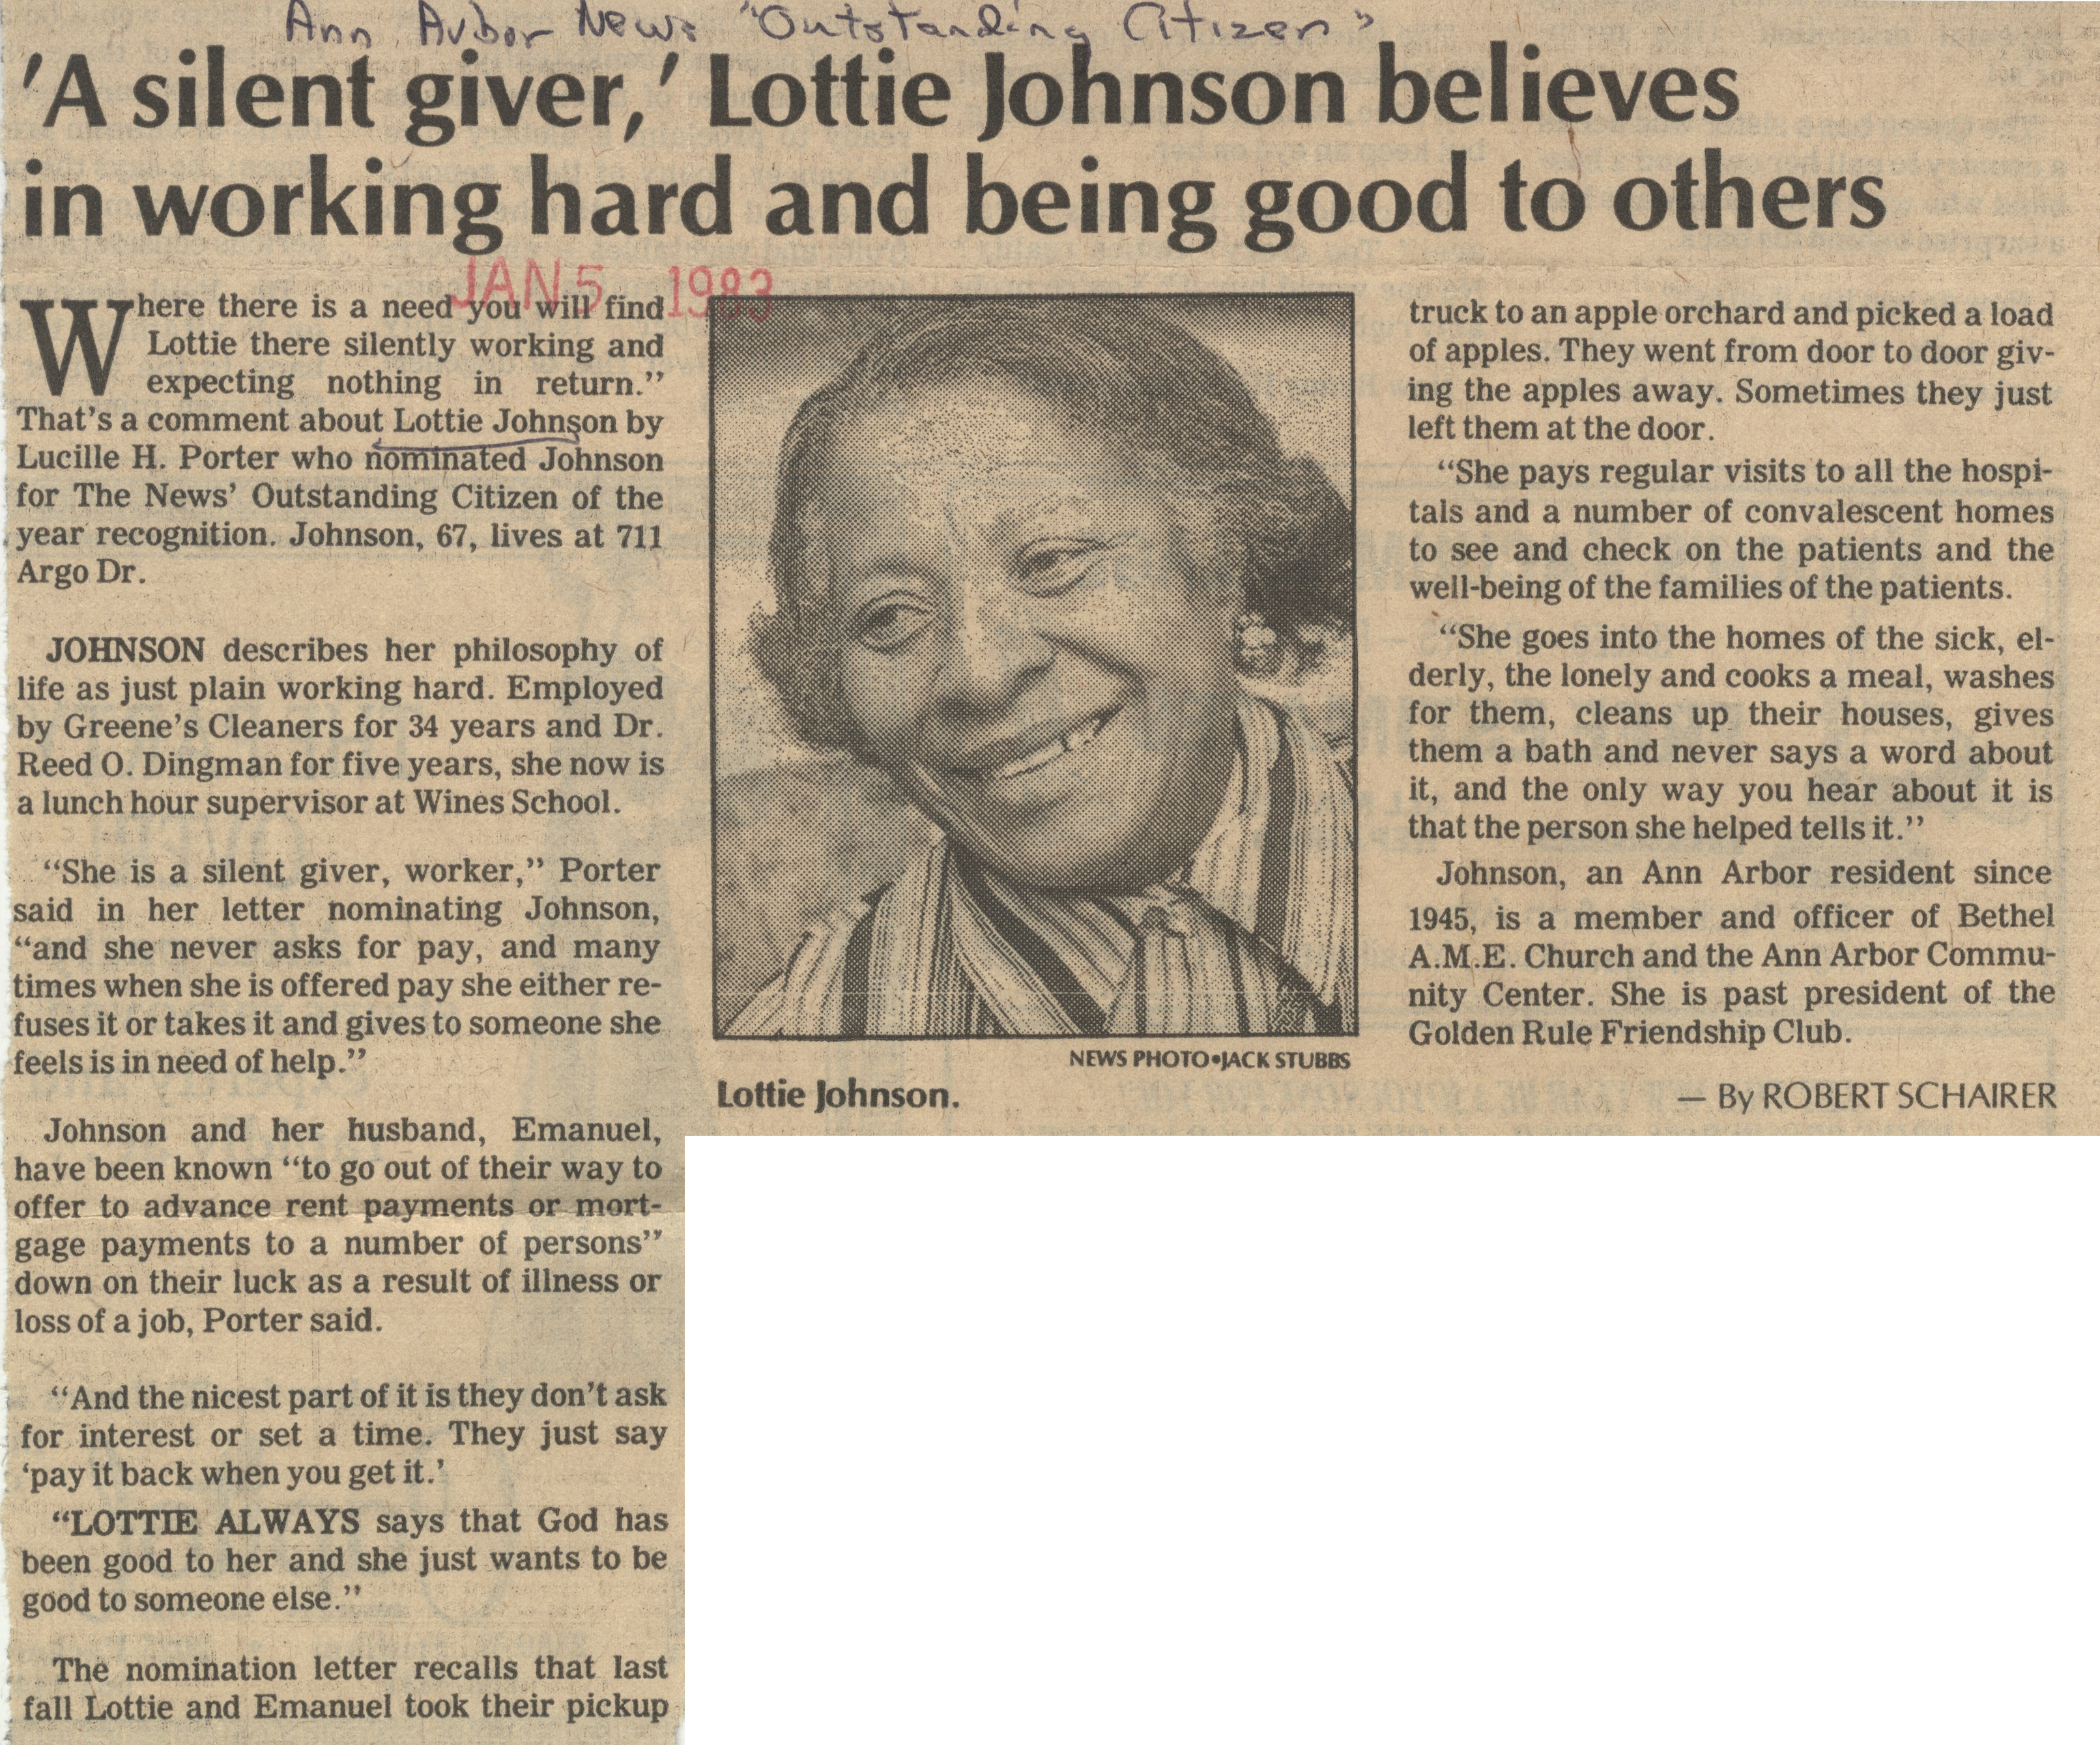 'A Silent Giver, ' Lottie Johnson Believes In Working Hard And Being Good To Others image